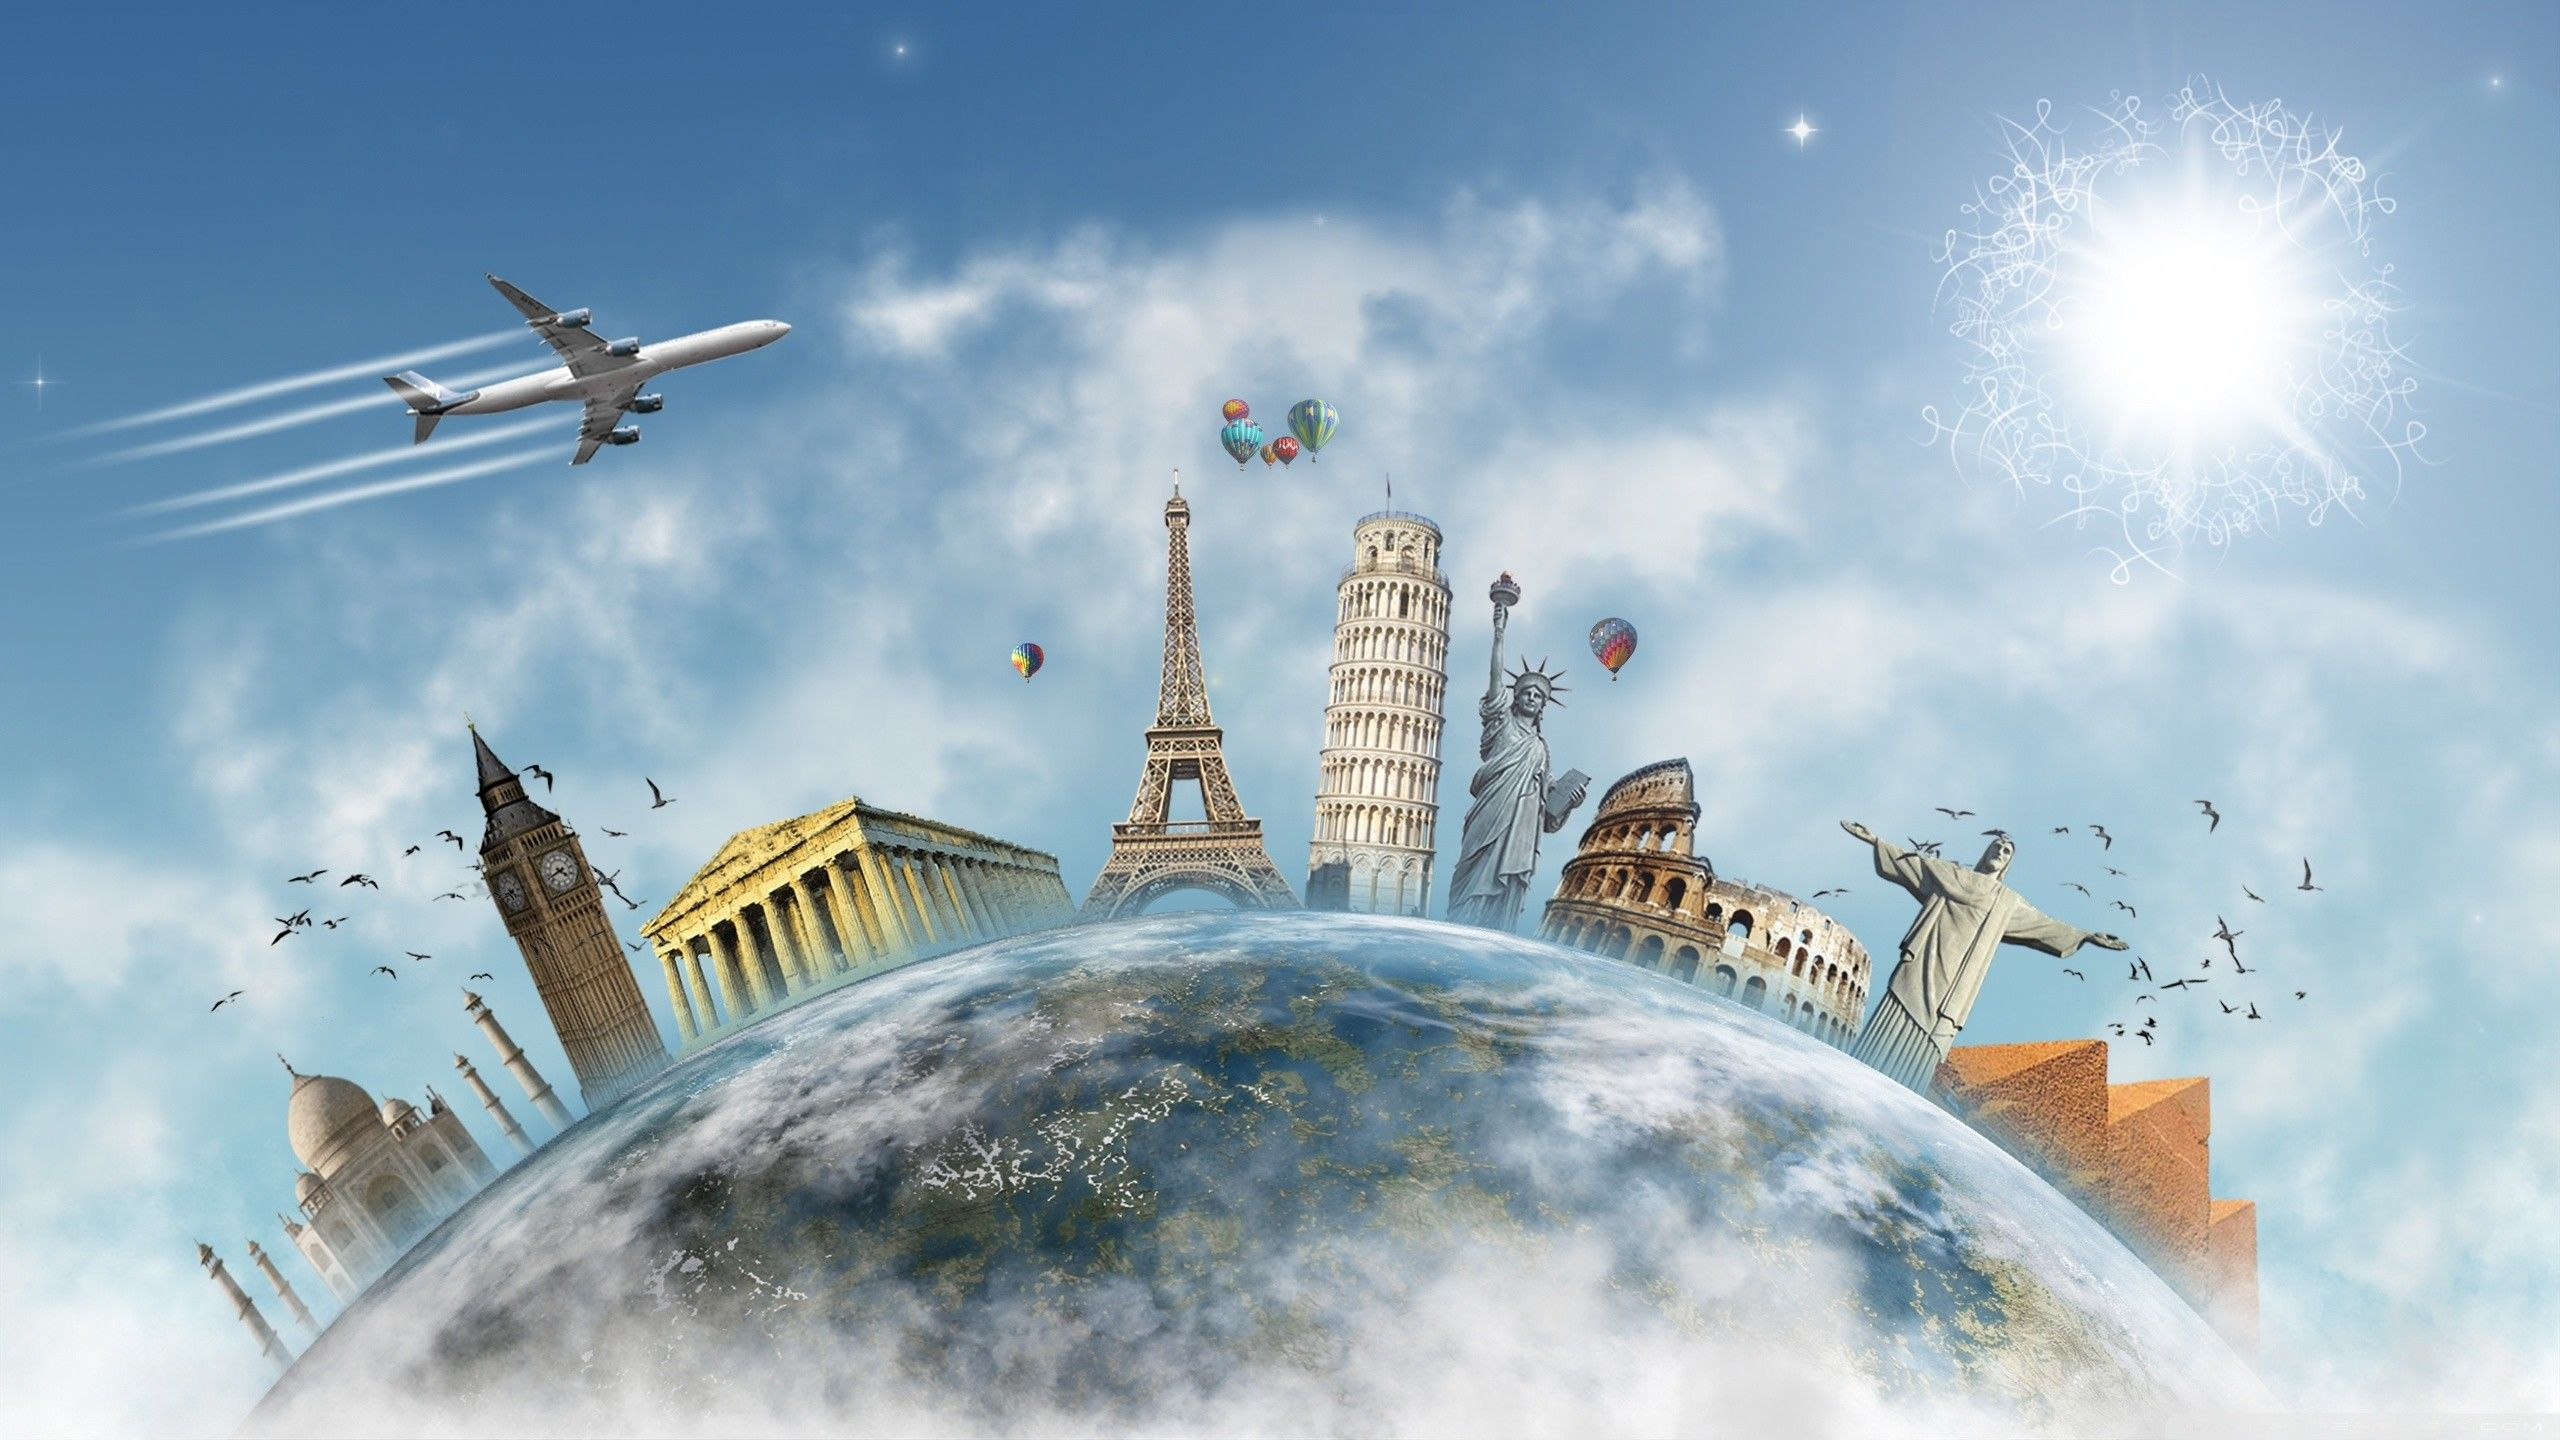 Traveling Wallpapers   Top Traveling Backgrounds 2560x1440